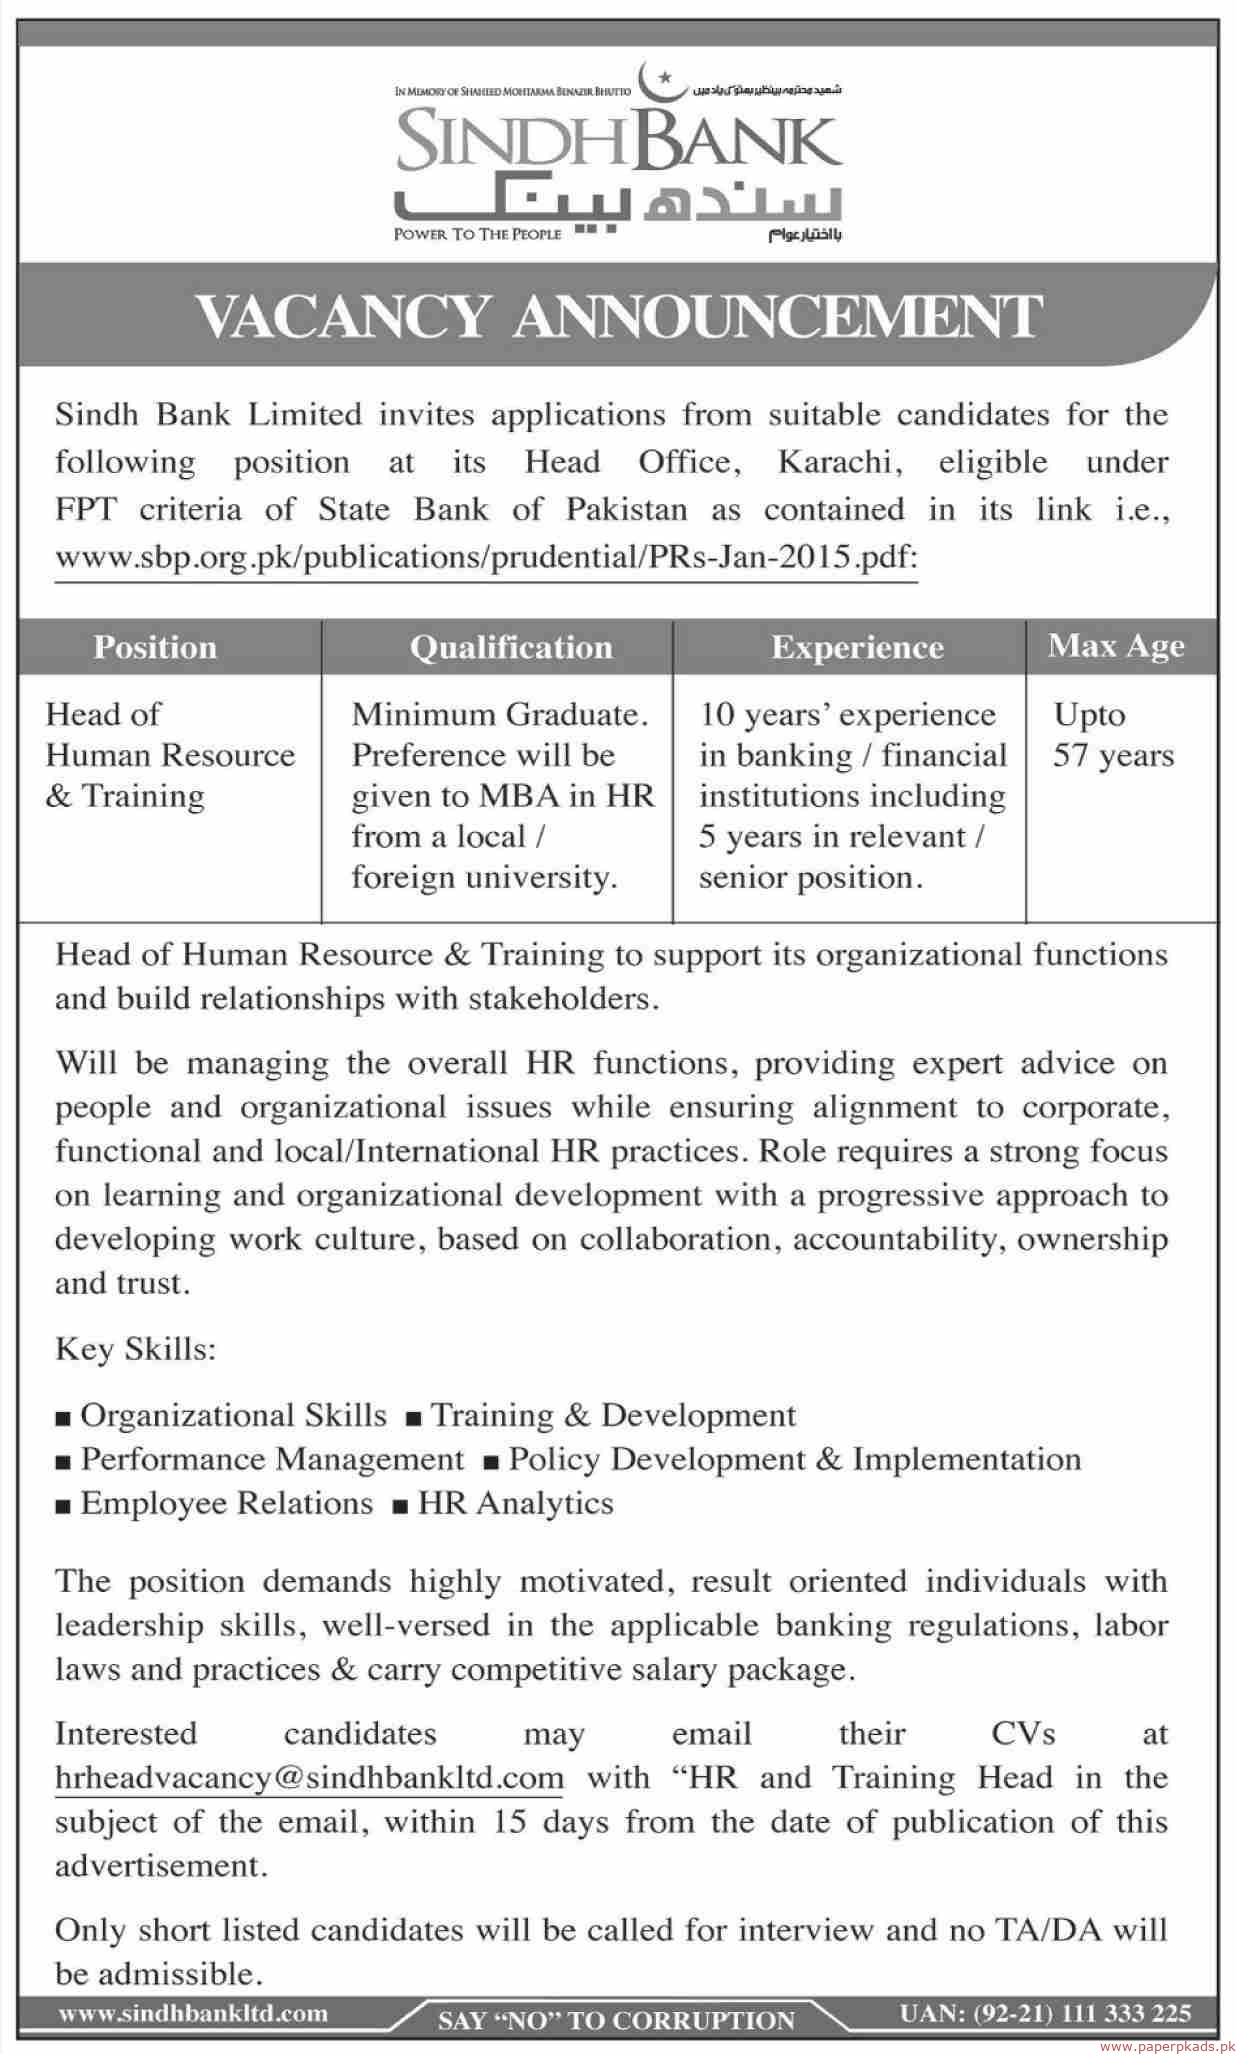 Sindh bank Jobs 2019 Latest